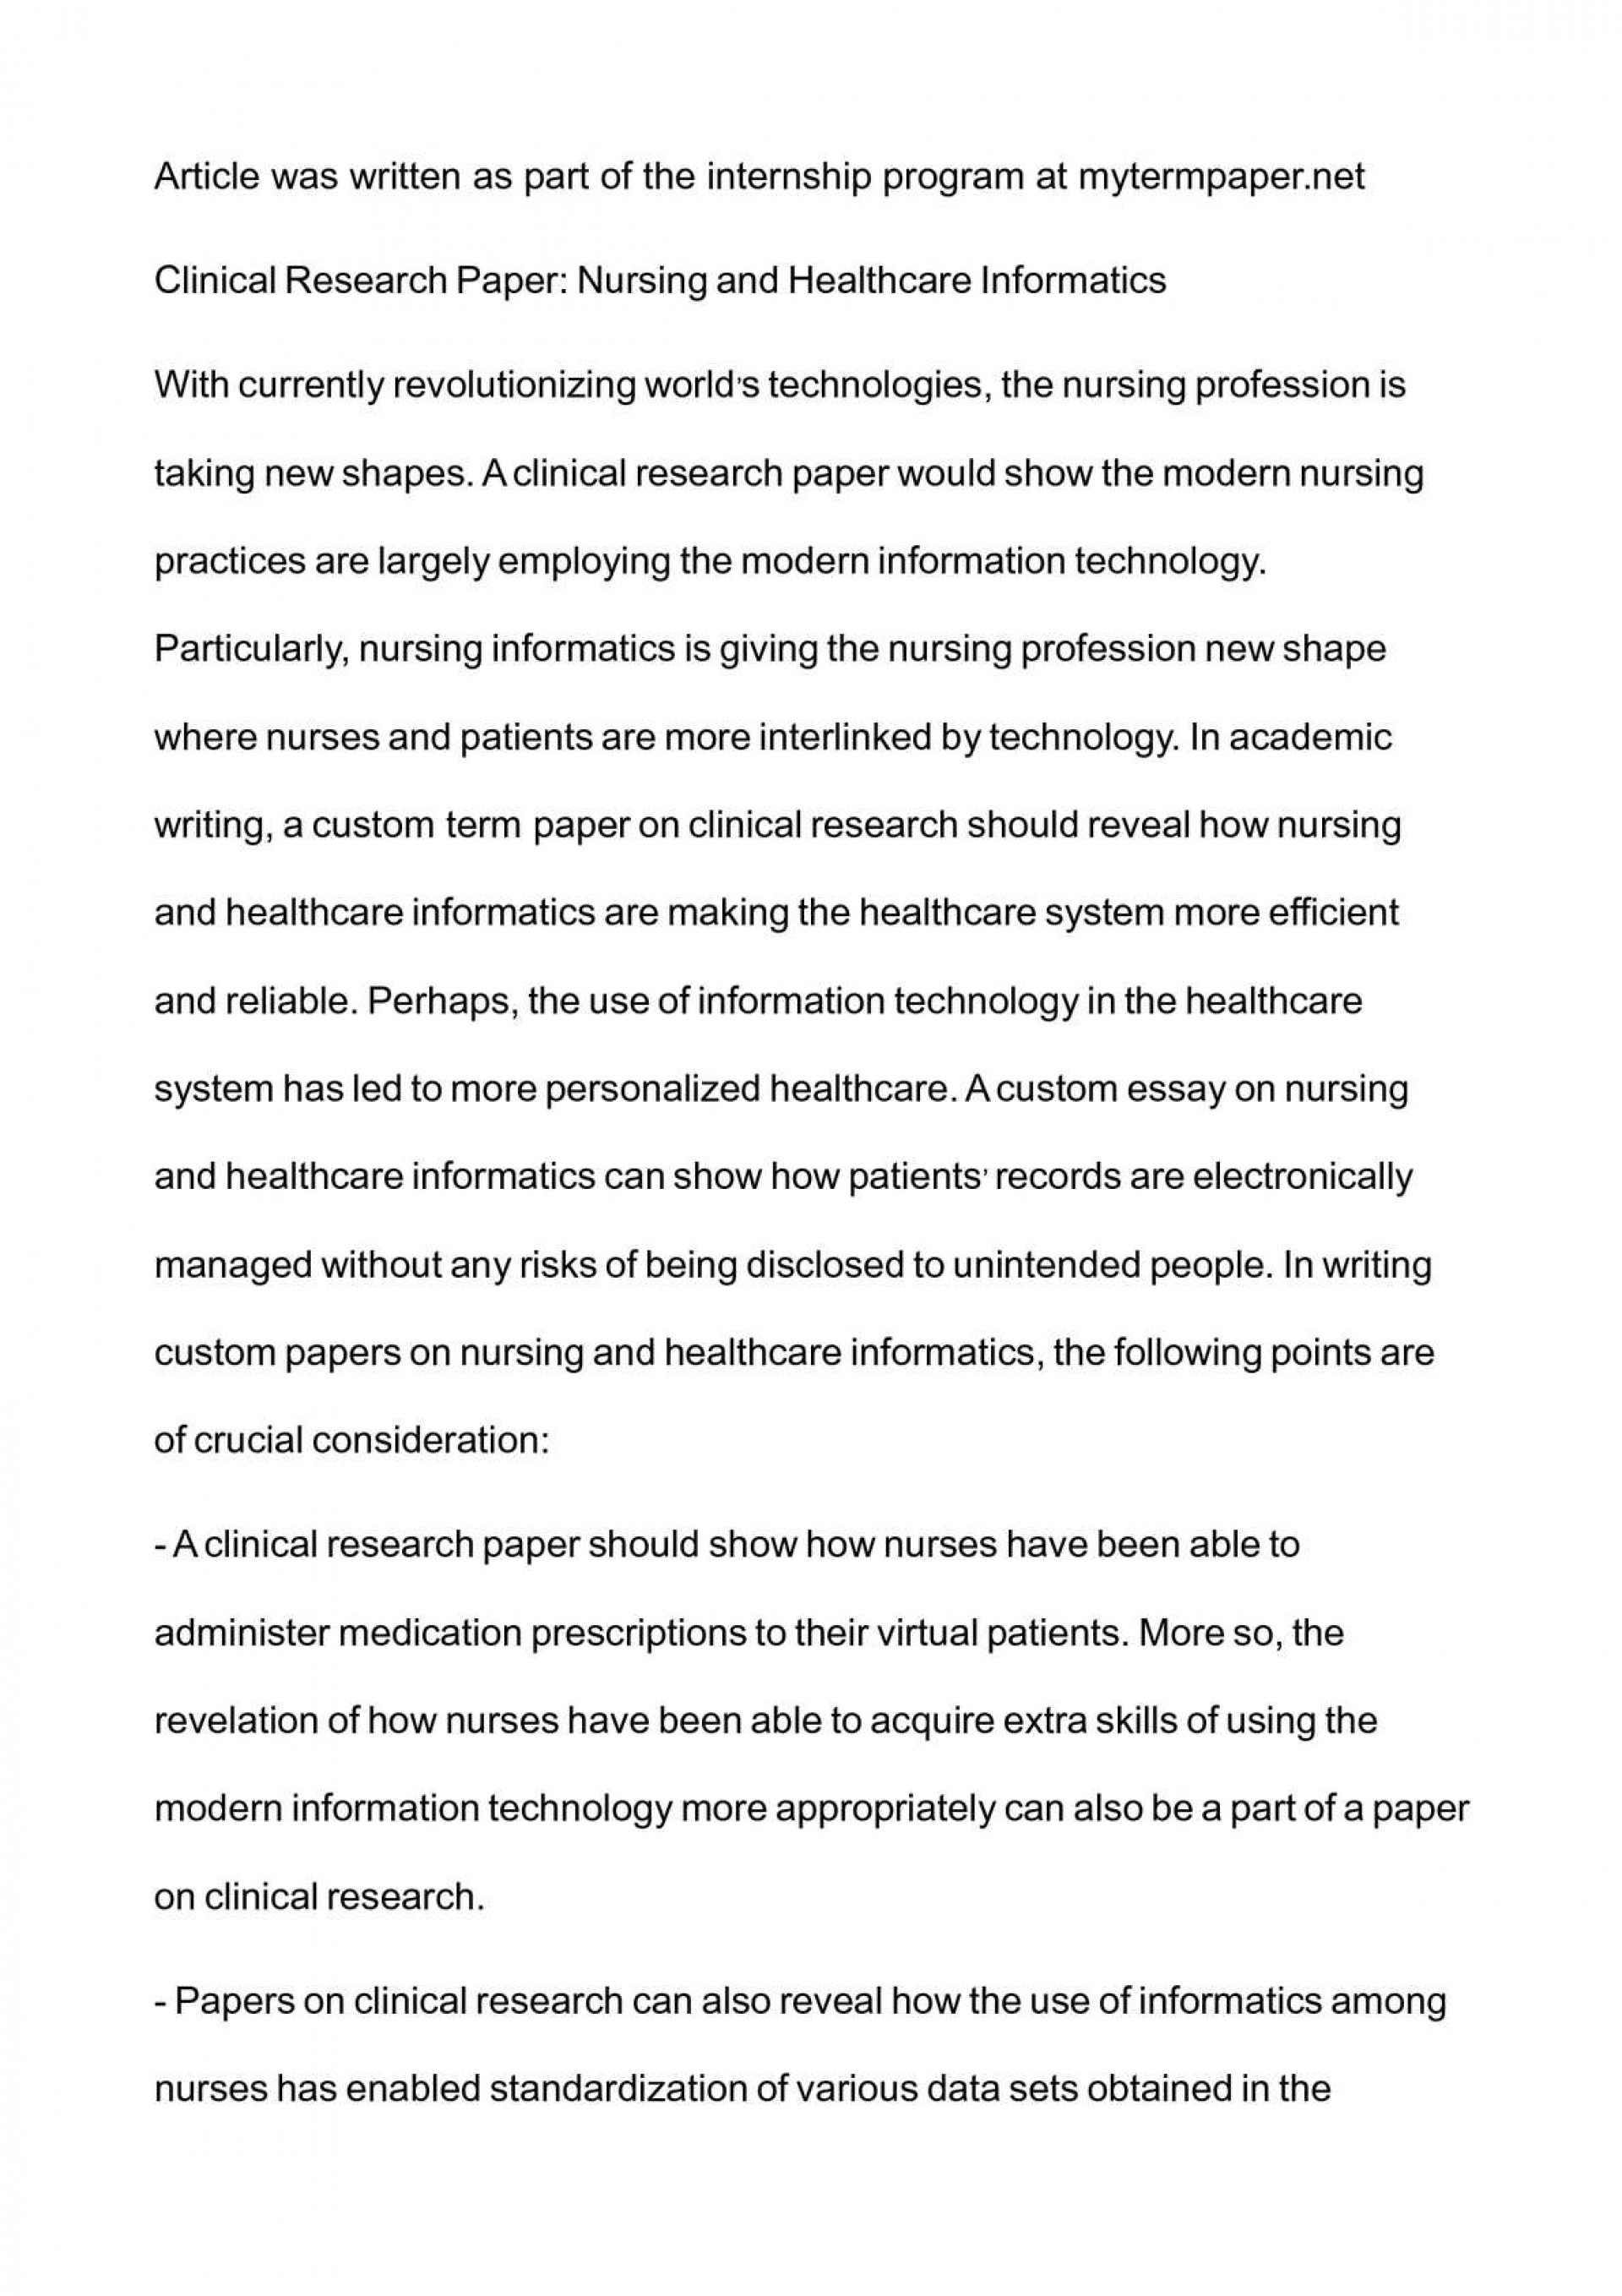 002 P1 Research Paper About Phenomenal Bullying Slideshare Chapter 2 On Cyberbullying Pdf 1920